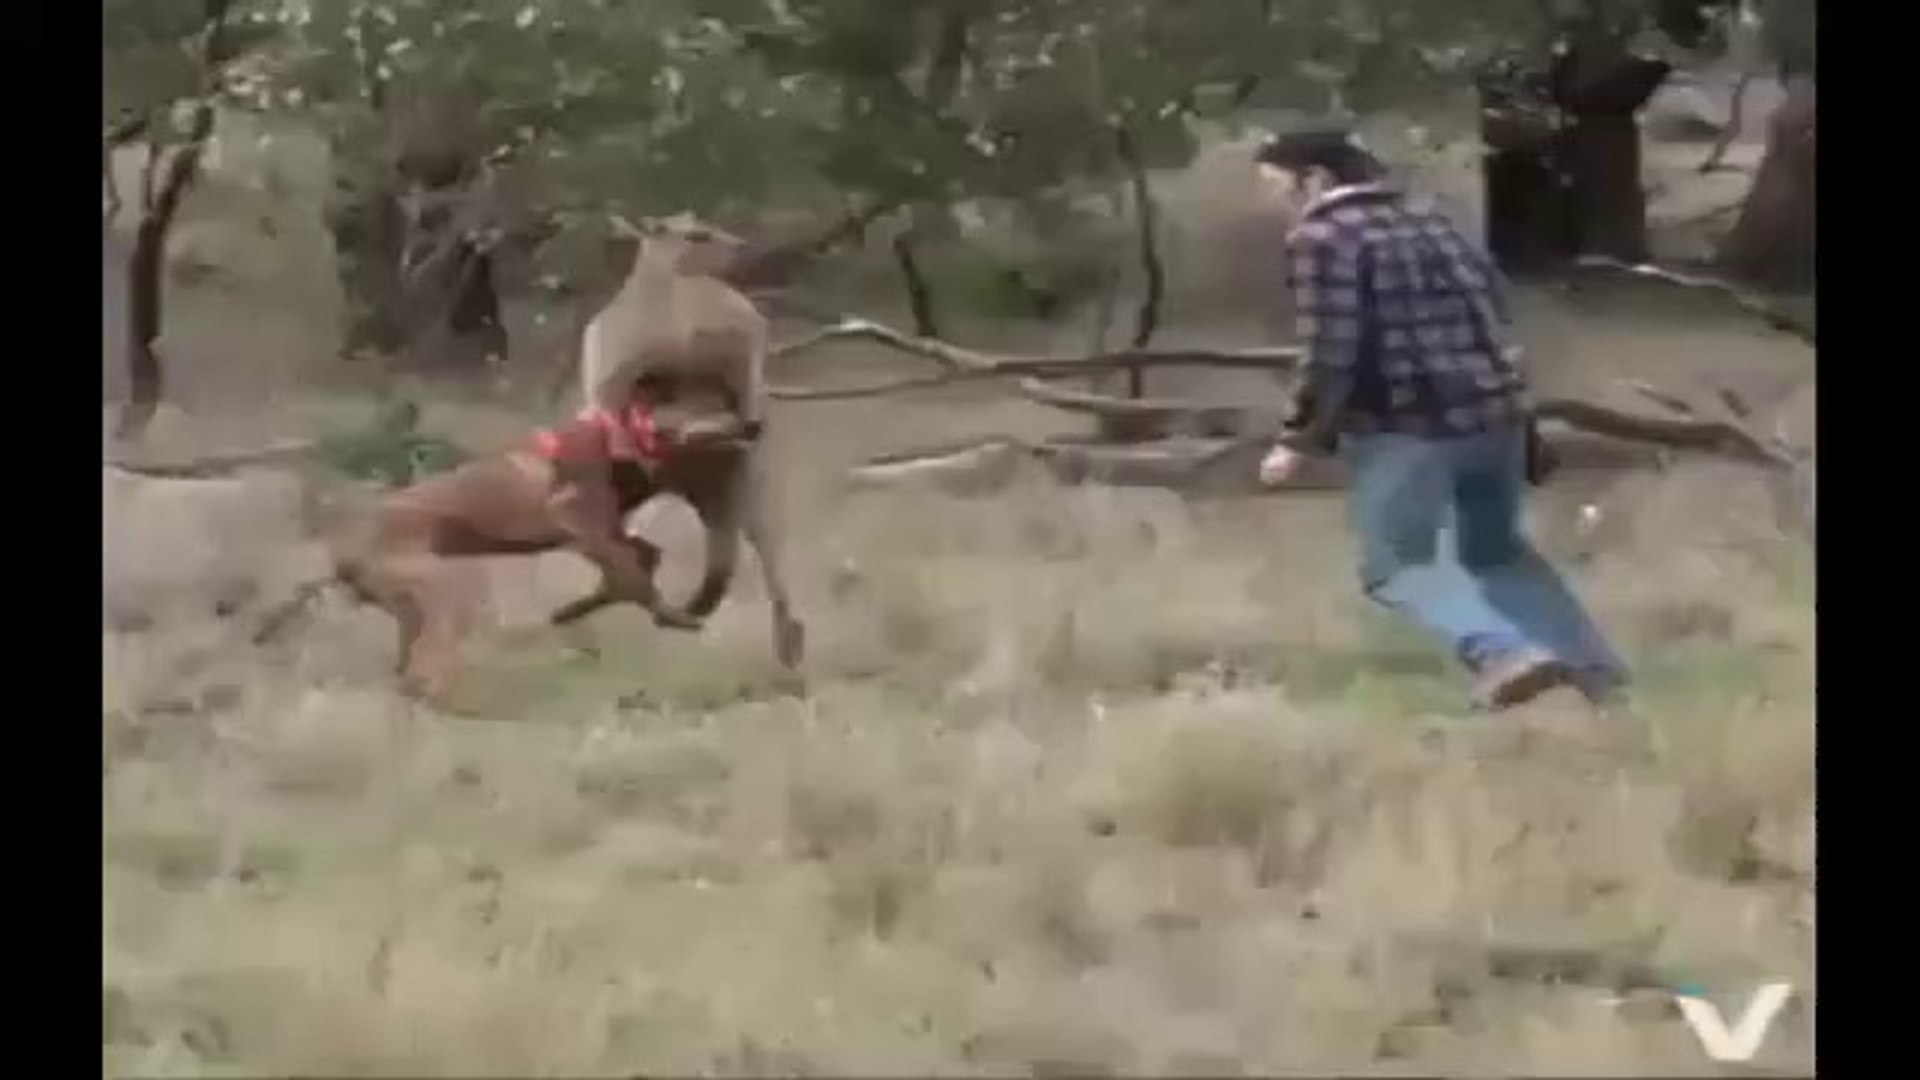 PiTBULL vs KANGURU vs iNSAN - PiTBULL DOG vs KANGAROO and PEOPLE